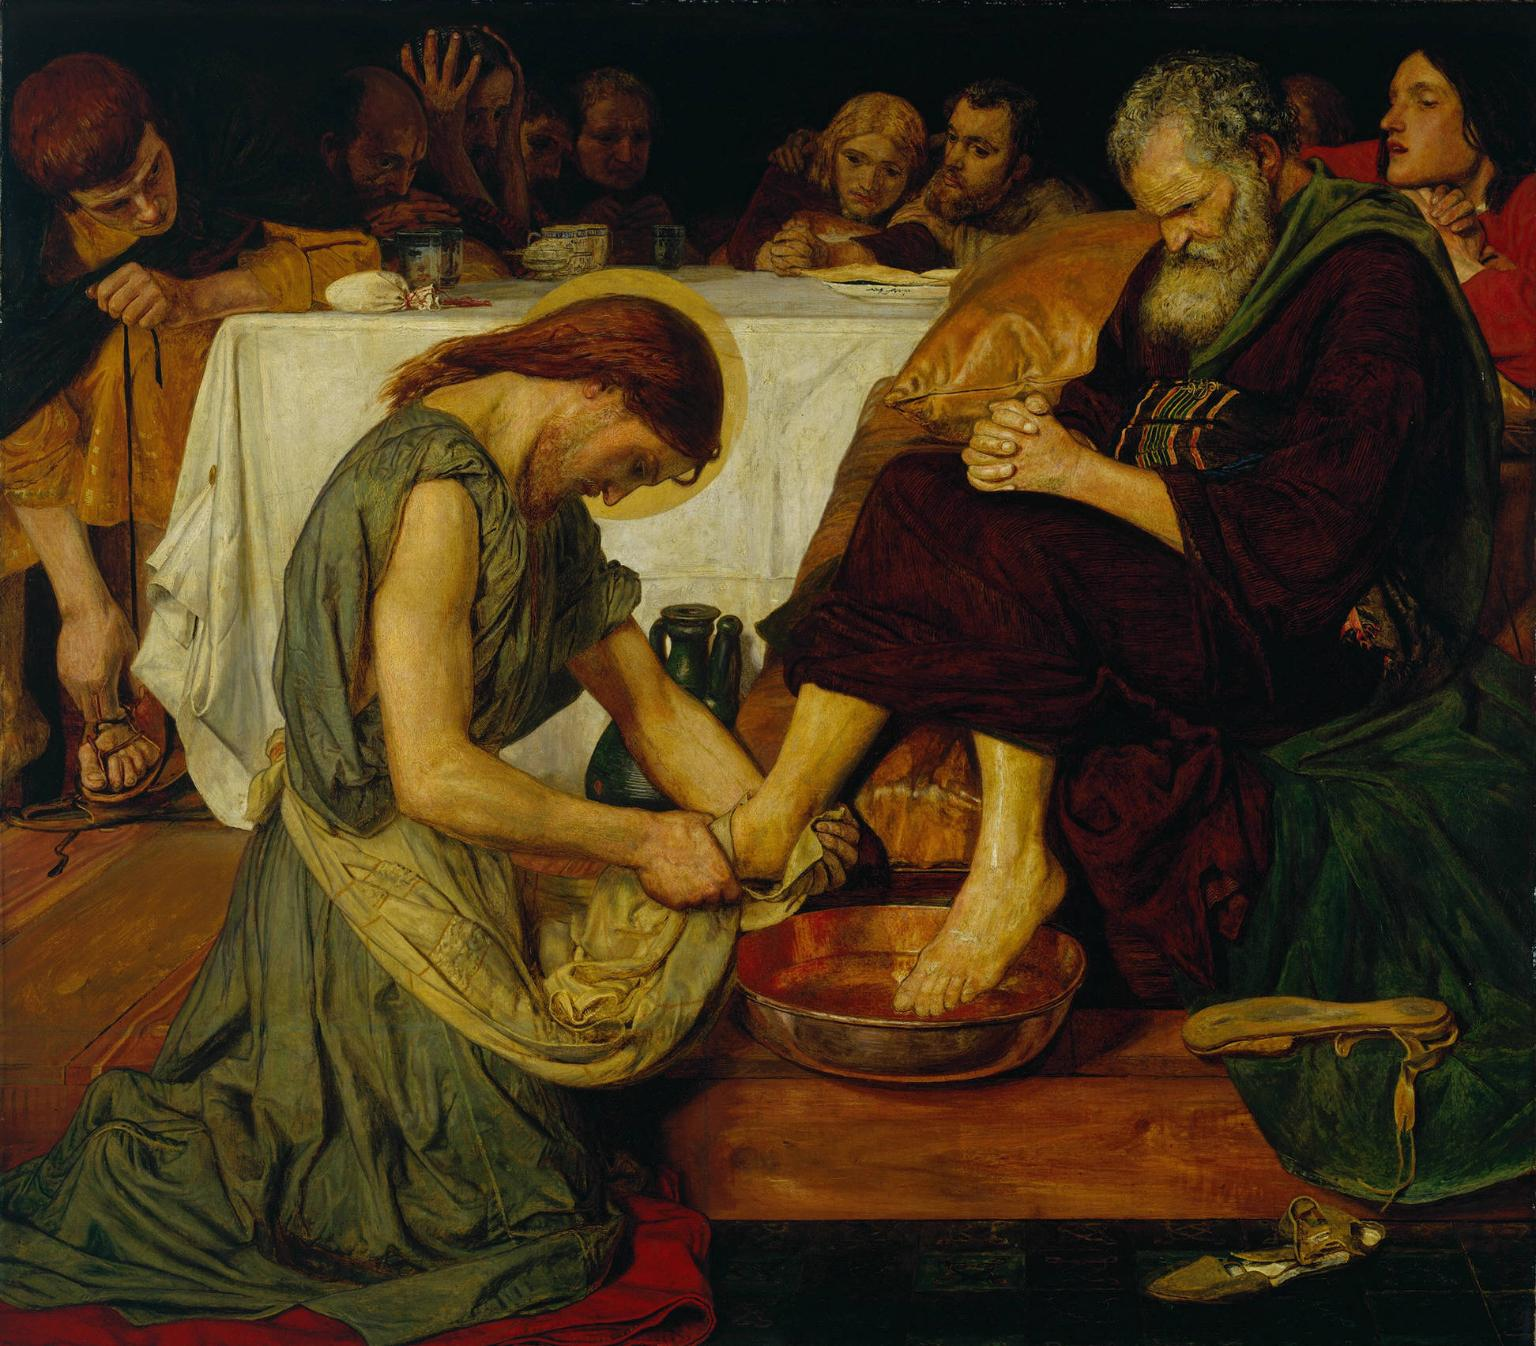 ford-madox-brown-christ-washing-peters-feet-1851-56